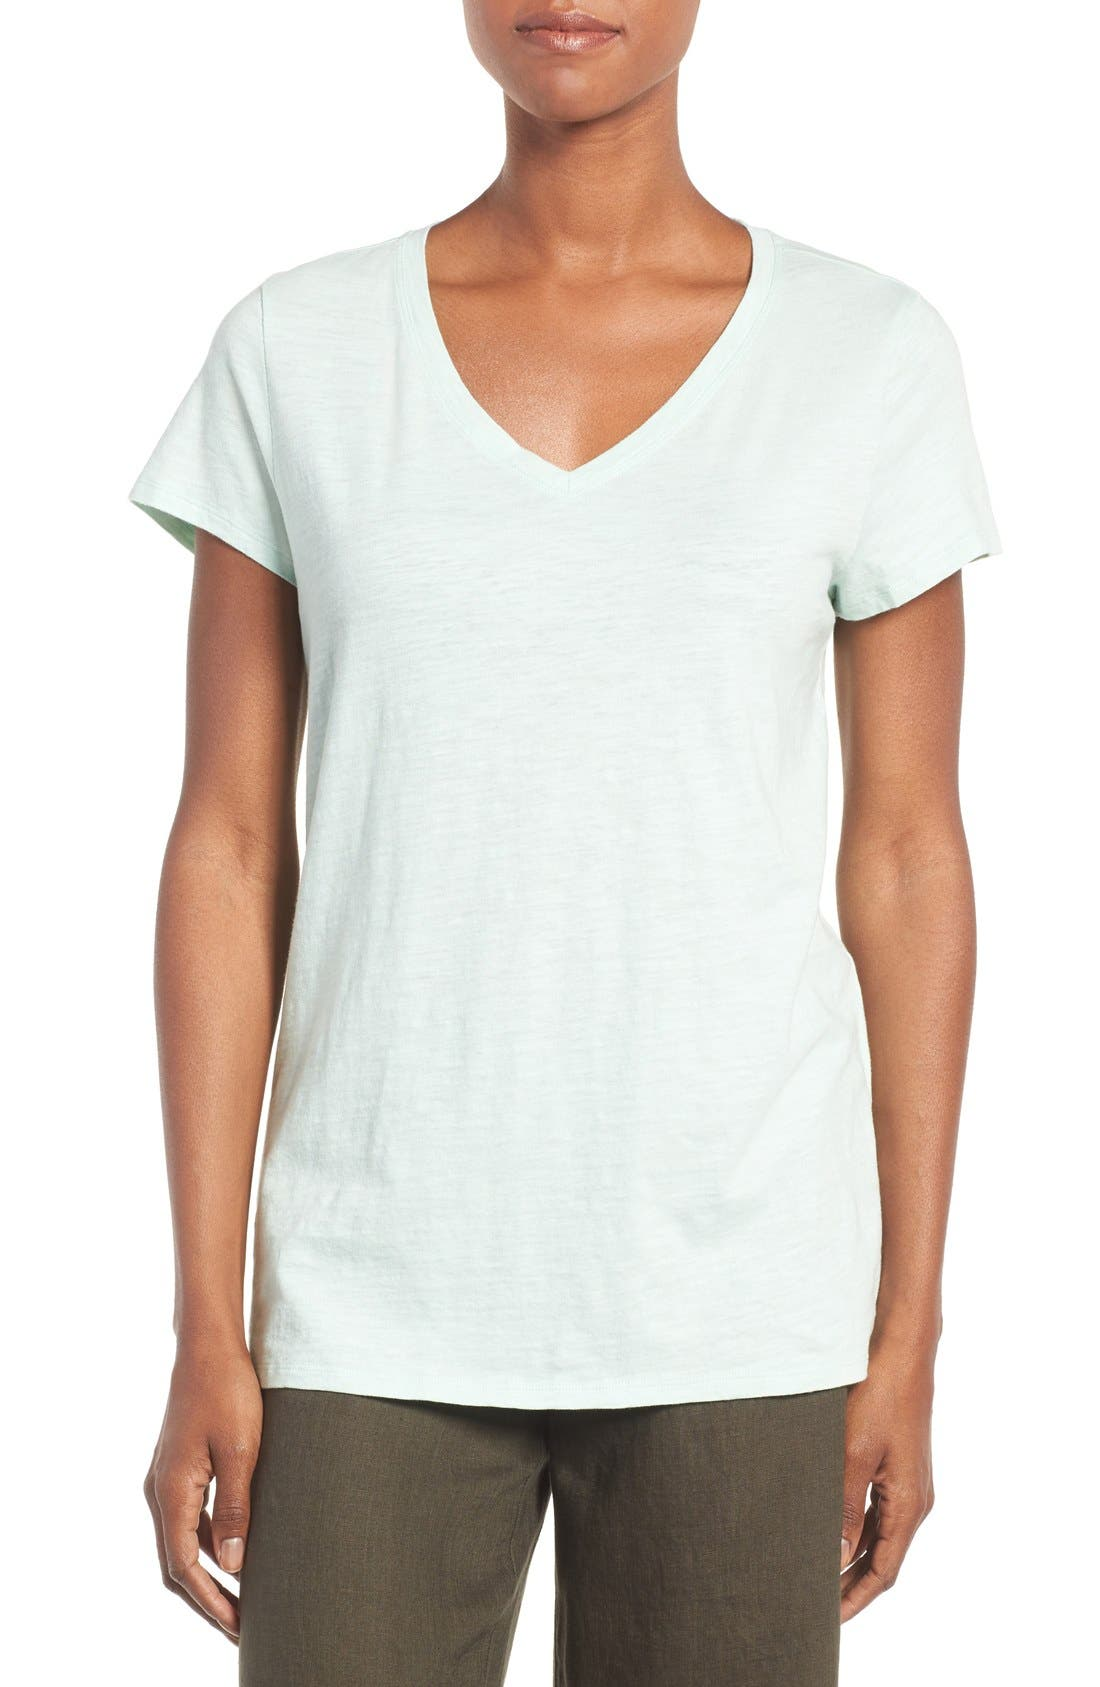 Main Image - Eileen Fisher Organic Cotton V-Neck Tee (Regular & Petite) (Nordstrom Exclusive)